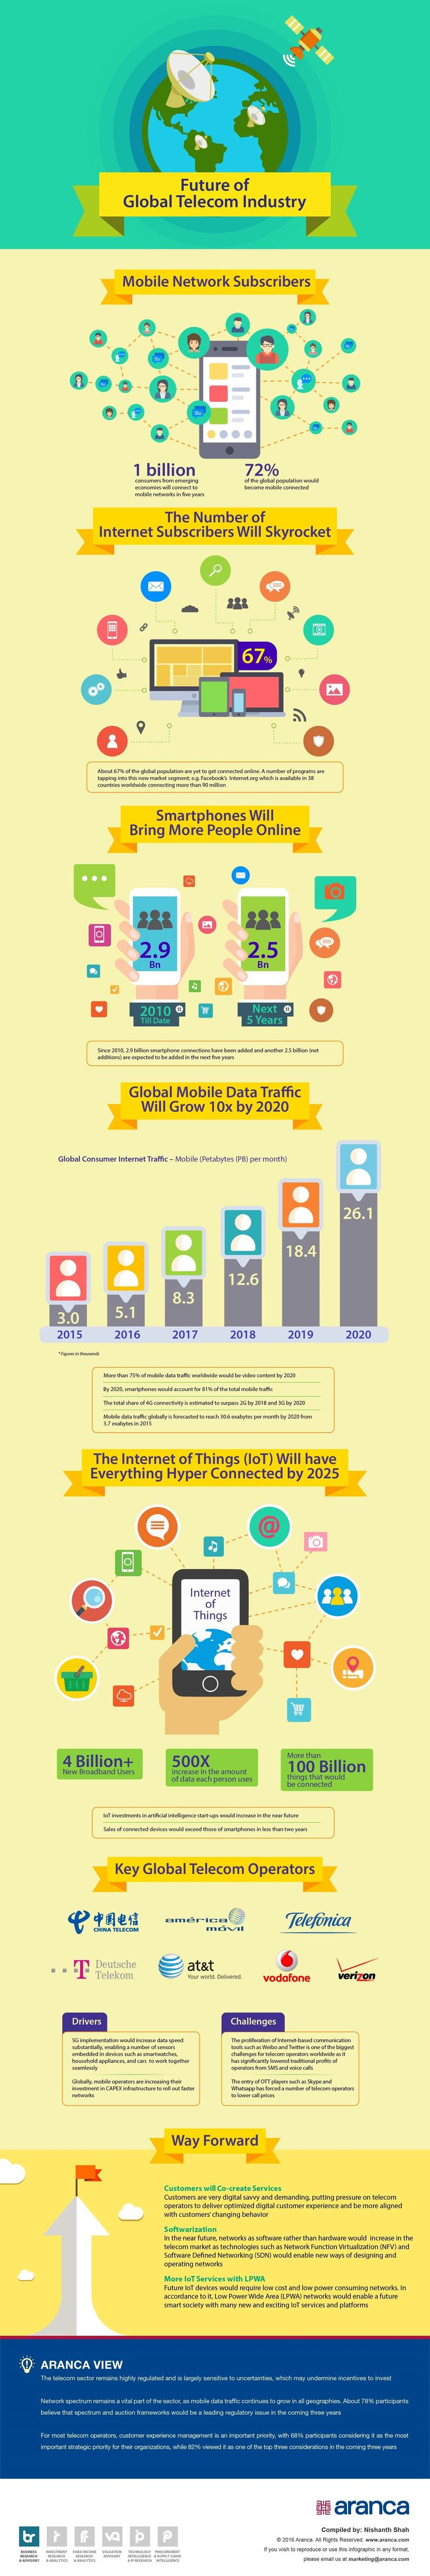 Aranca predicts the future of Telecom Industry in the Global Market. Read on to know further details from Aranca's Market Research Experts.